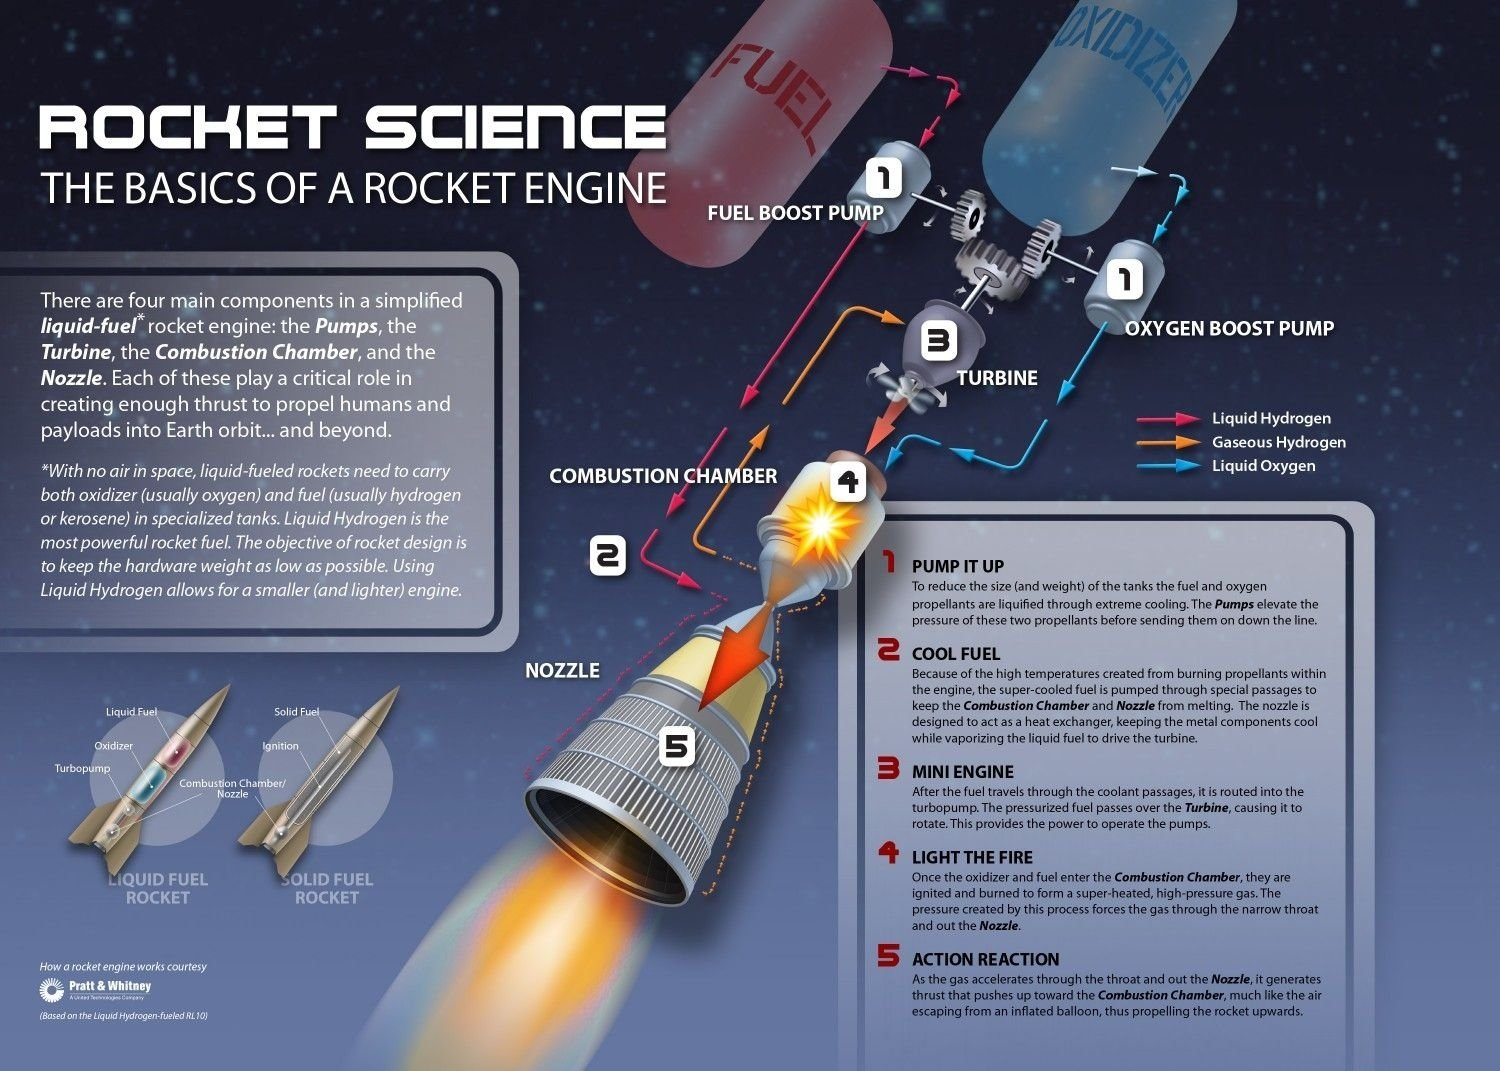 10 Fabulous A Rocket To The Moon Your Best Idea rocket science infographic this illustrates the basics of how a 2021